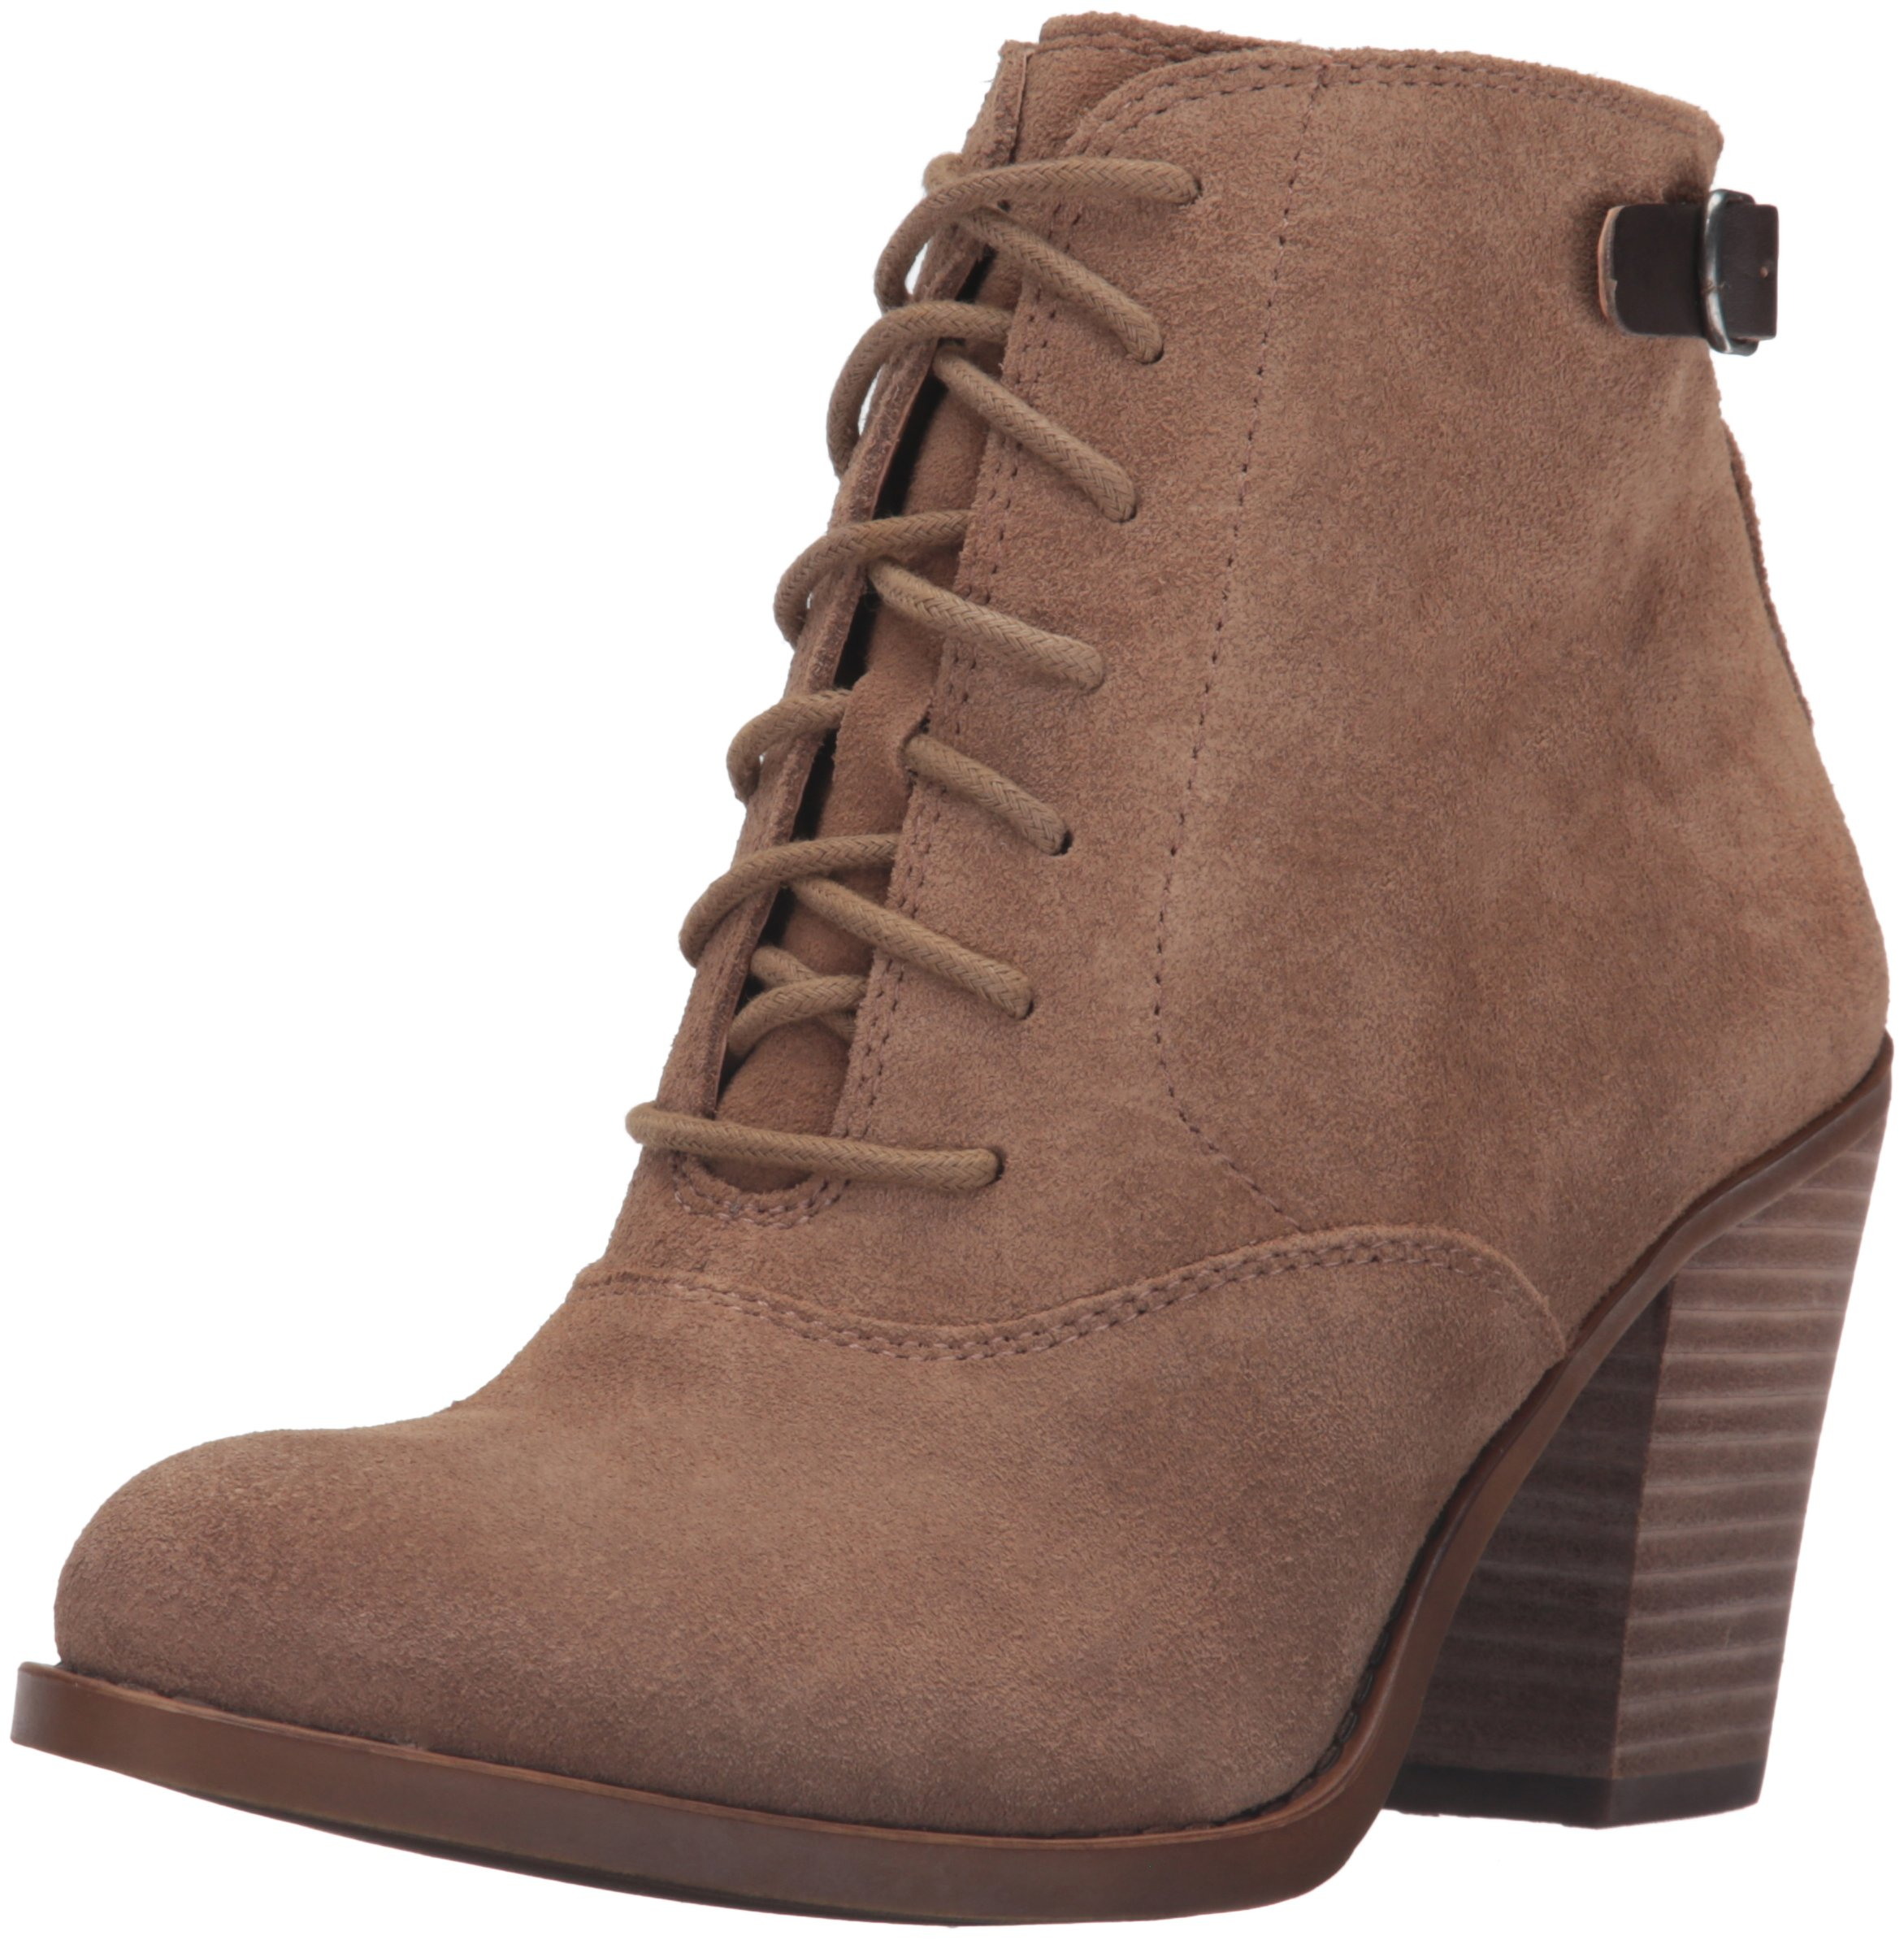 Lucky Brand Women's Echoh Ankle Bootie, Sesame, 10 M US by Lucky Brand (Image #1)